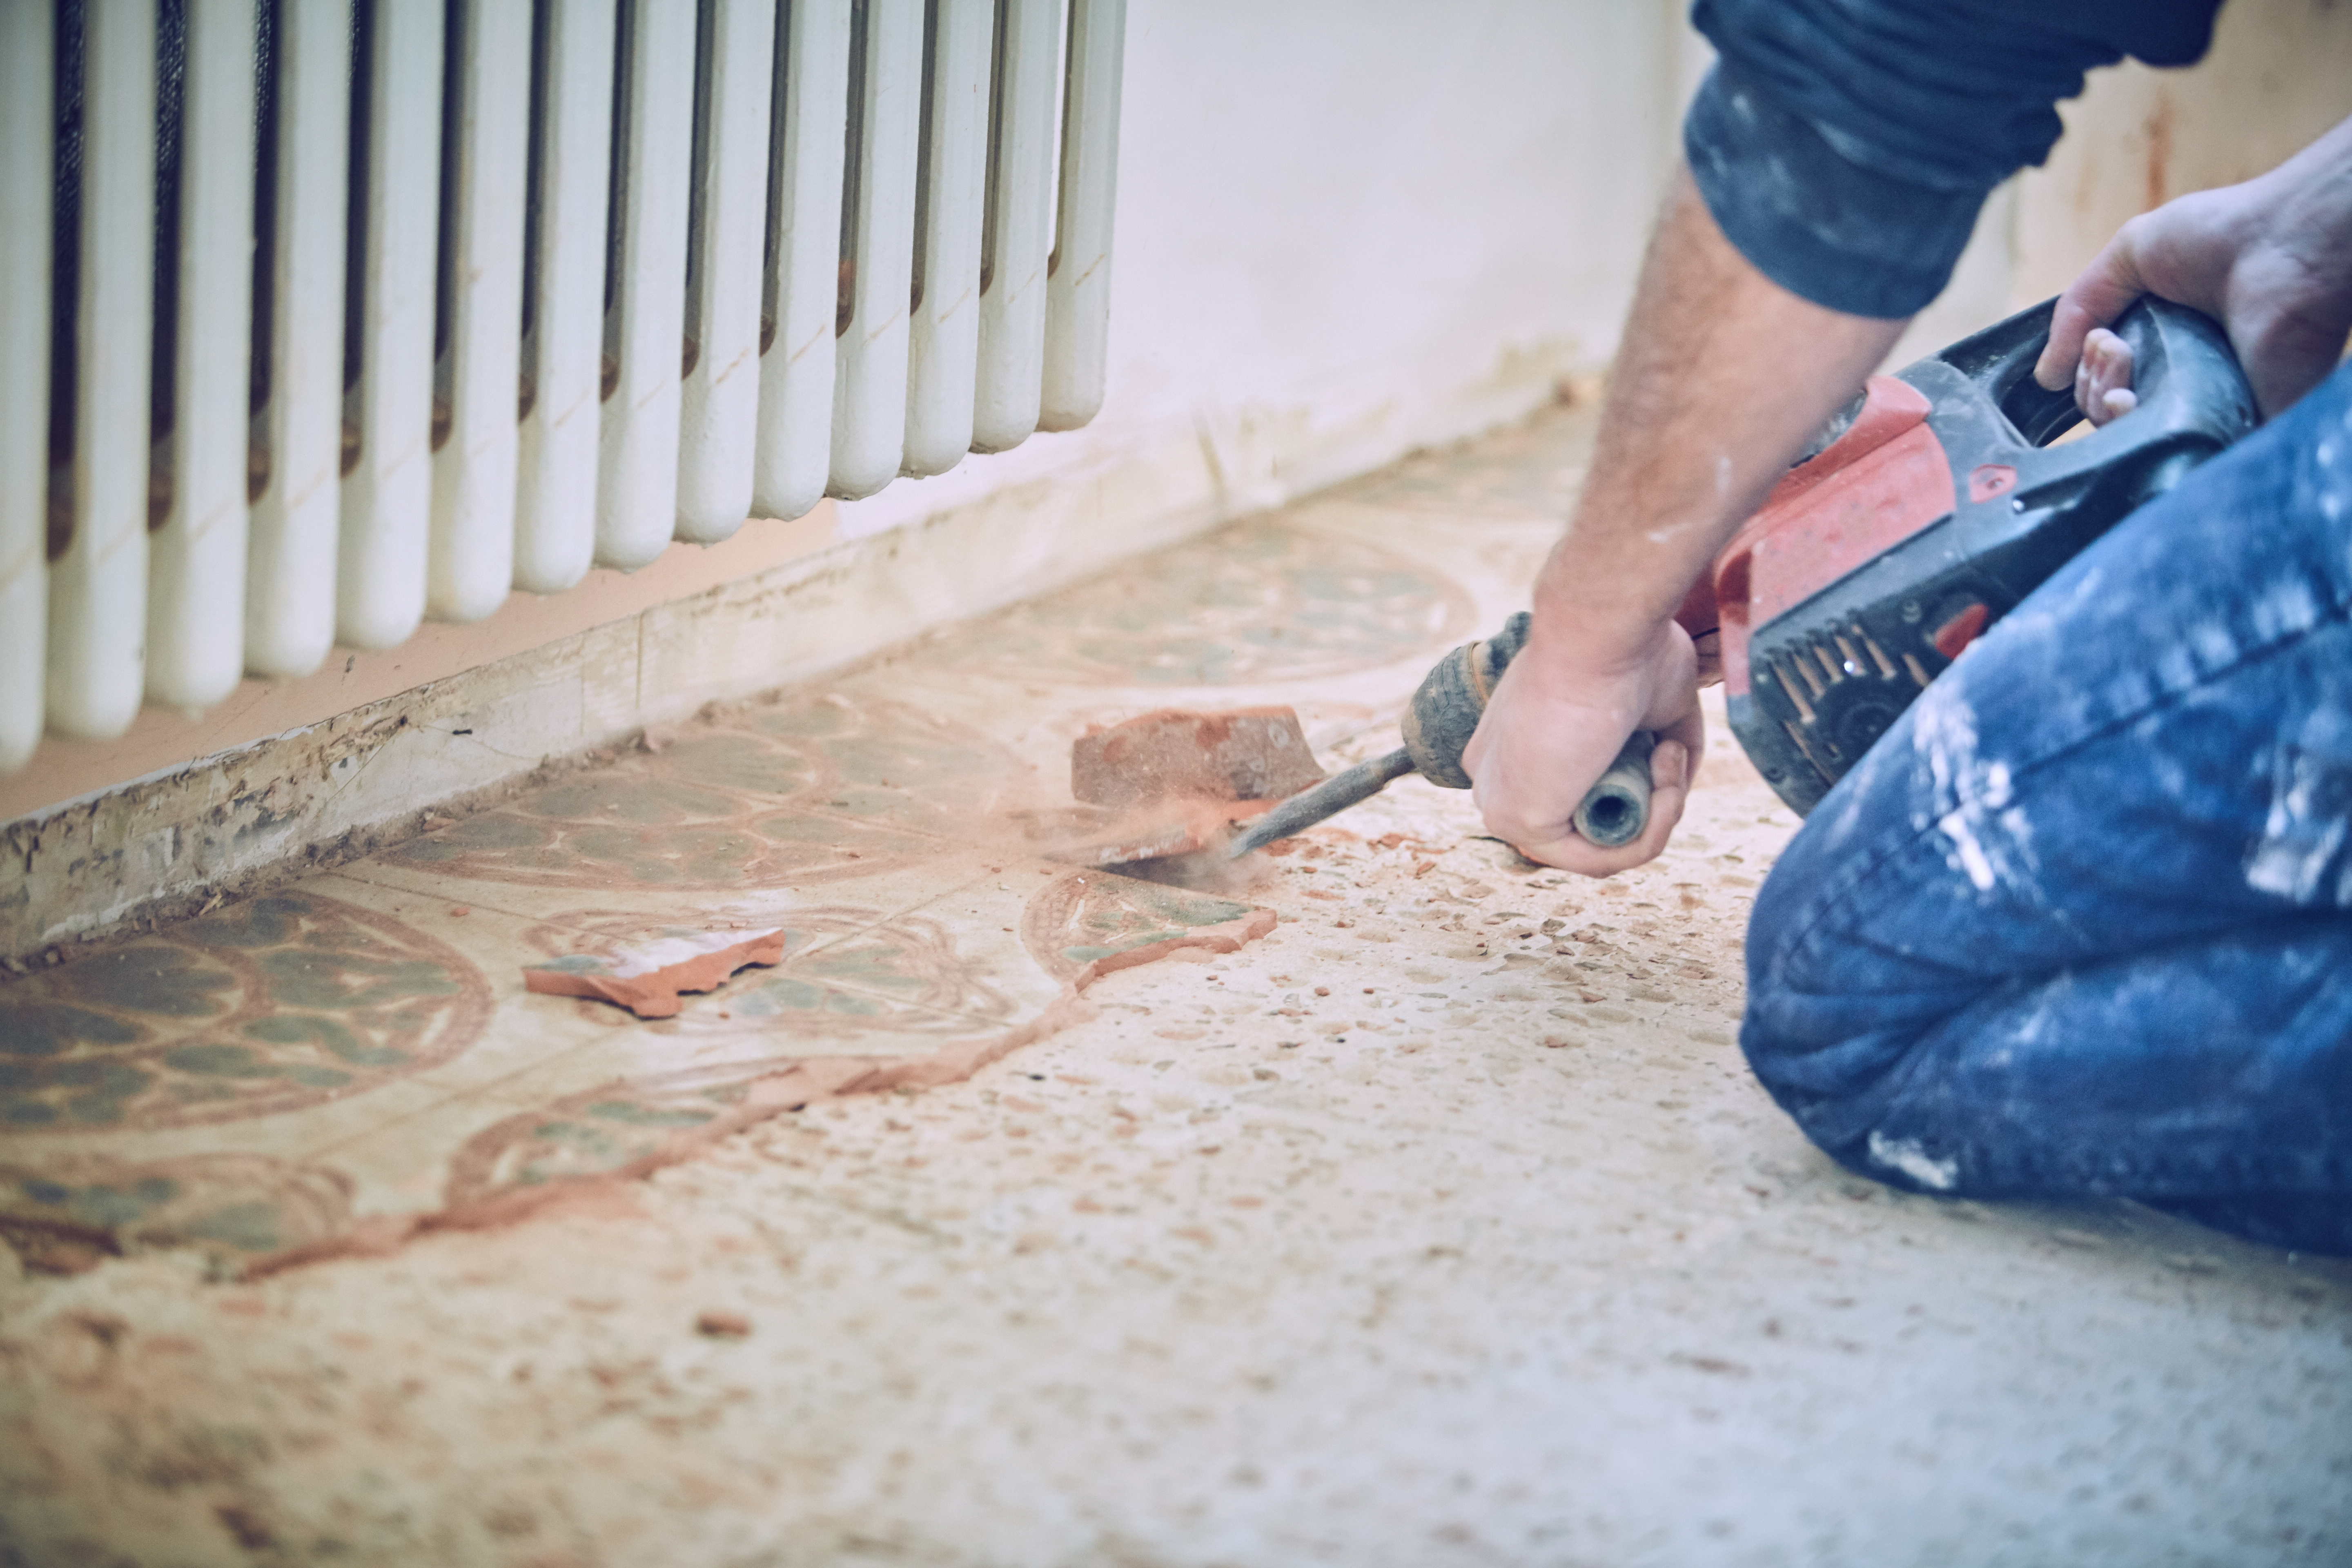 Marble Tile Removal in South Florida